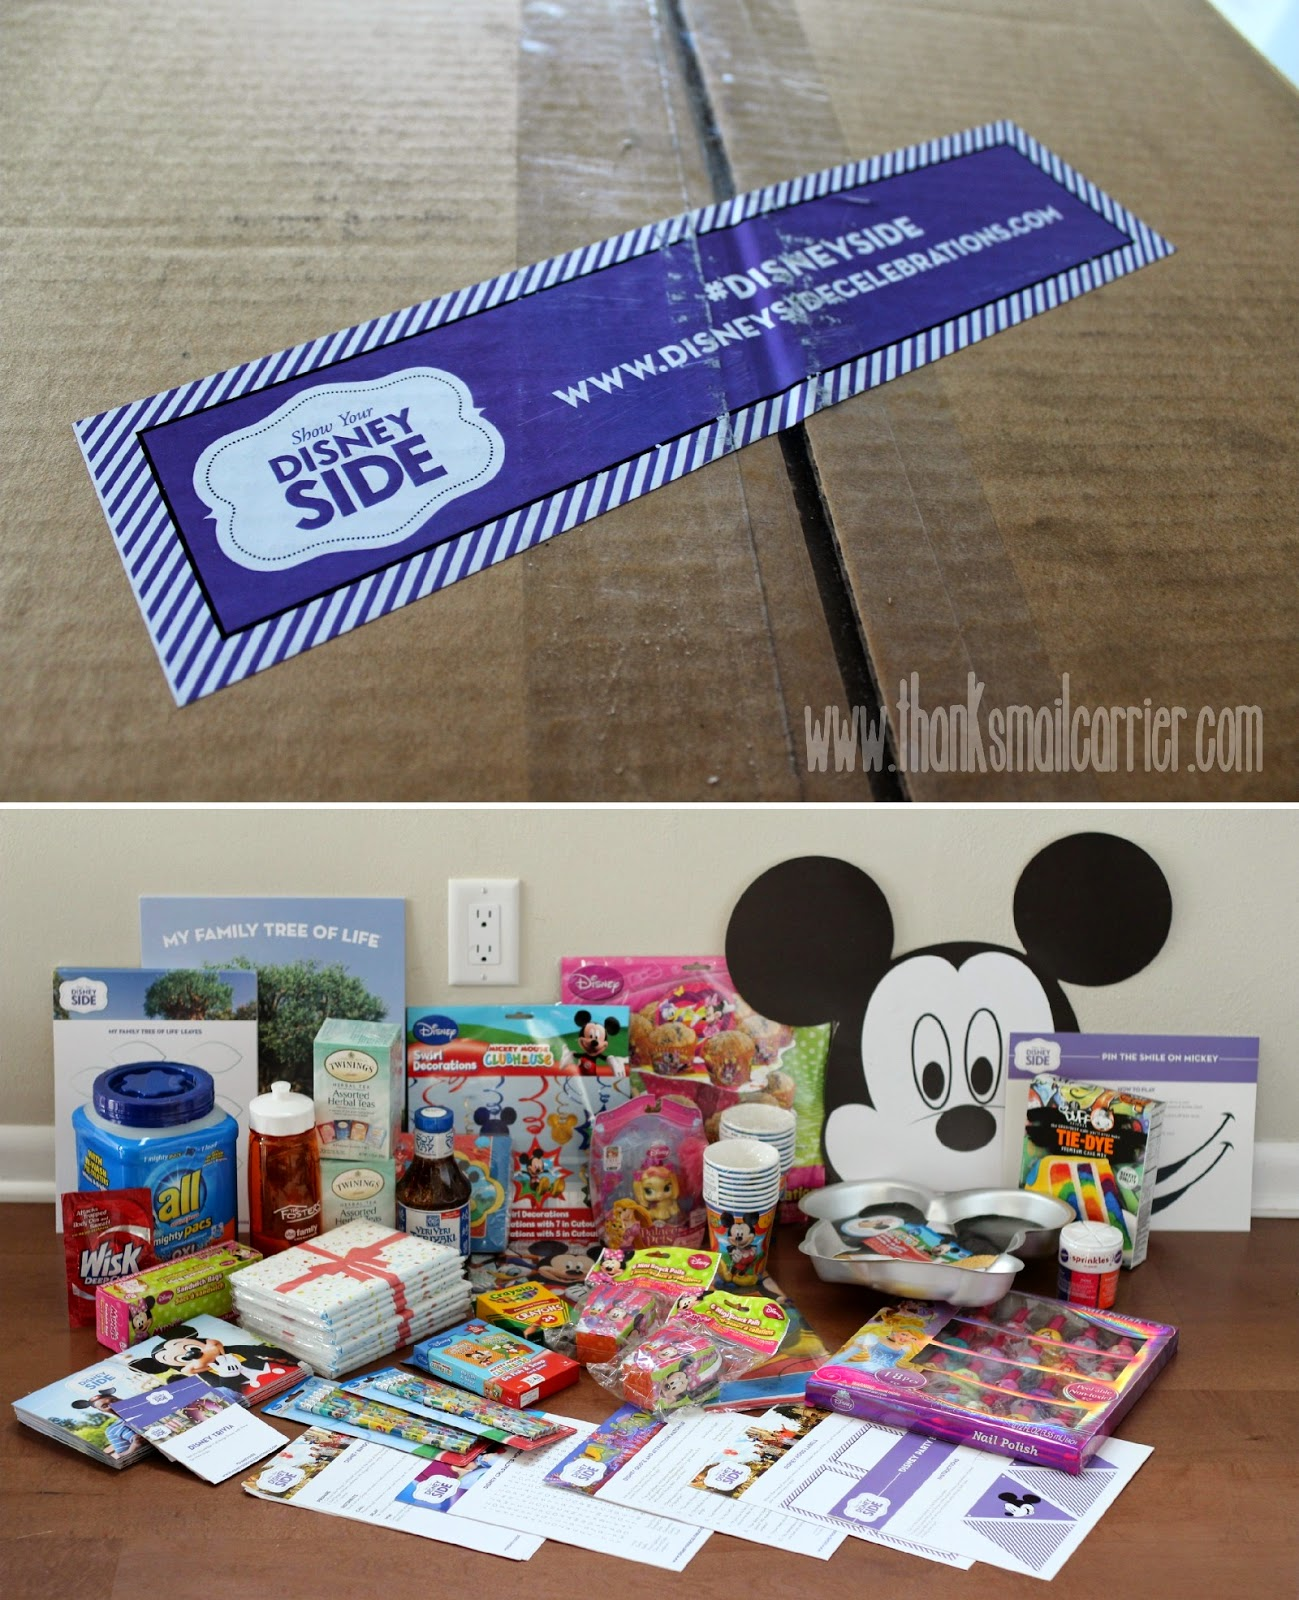 DisneySide Party Supplies